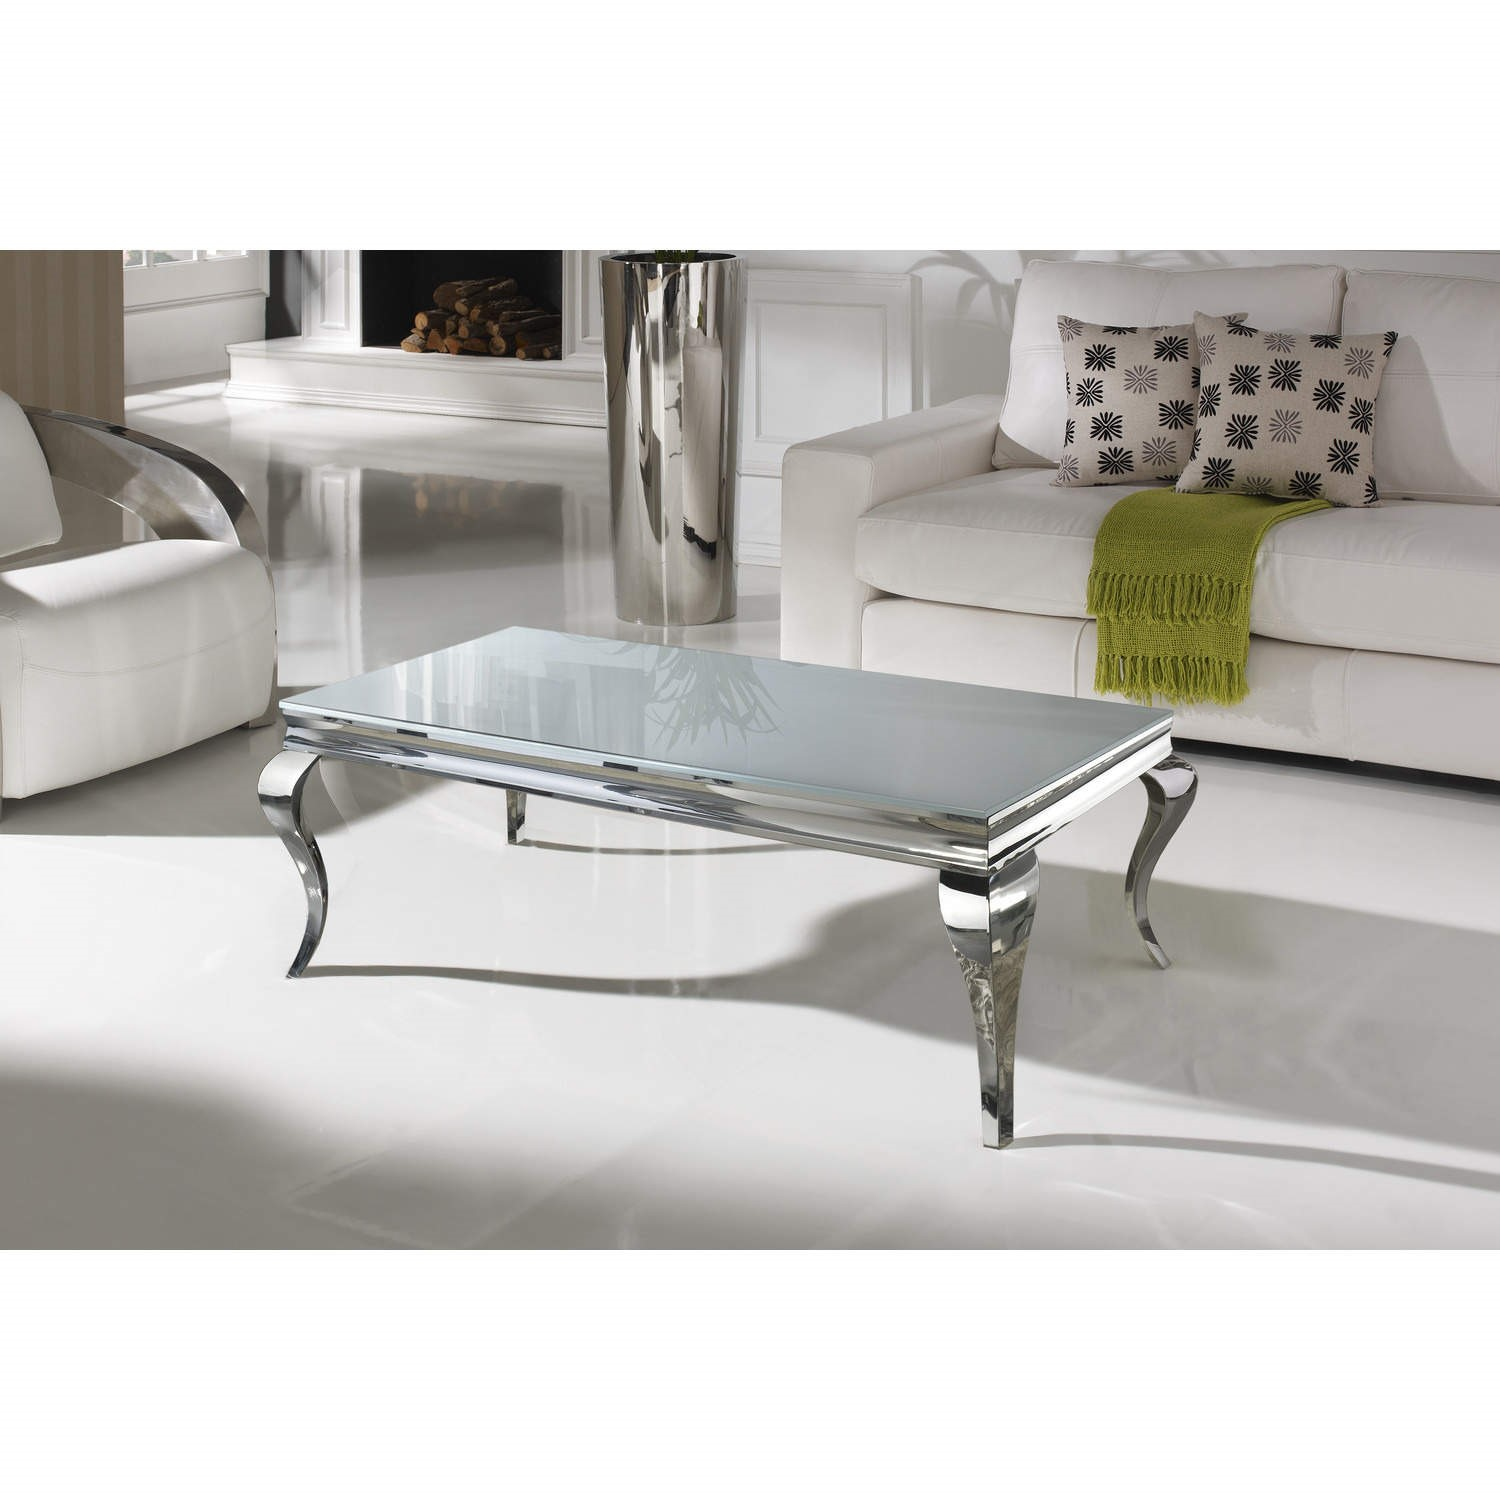 Louis Large Mirrored Coffee Table In White Vida Living Furniture123